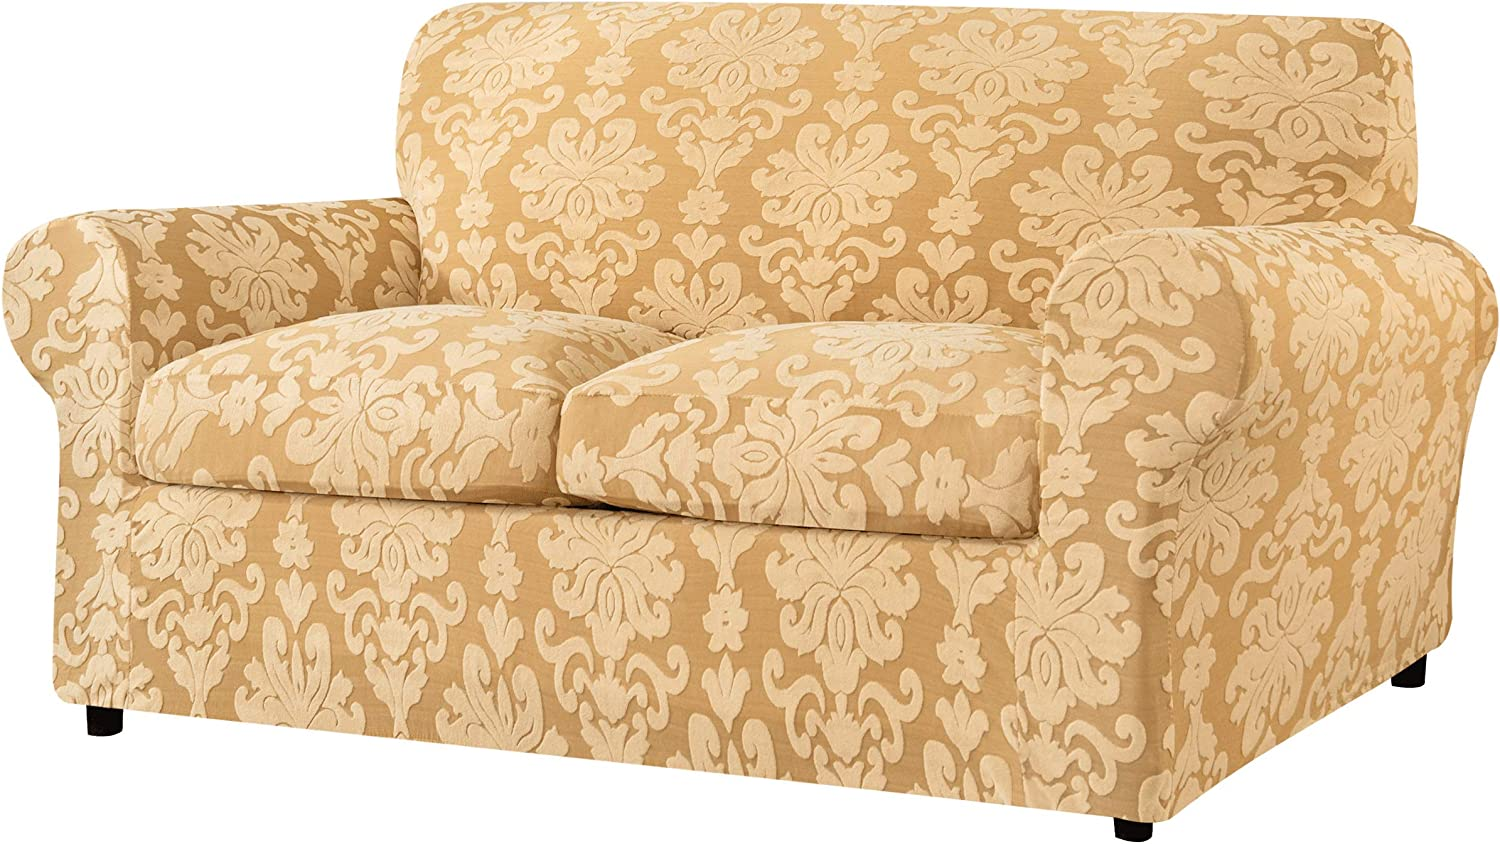 Blue Vintage Floral Damask Pattern Sofa Couch Cover Slipcover